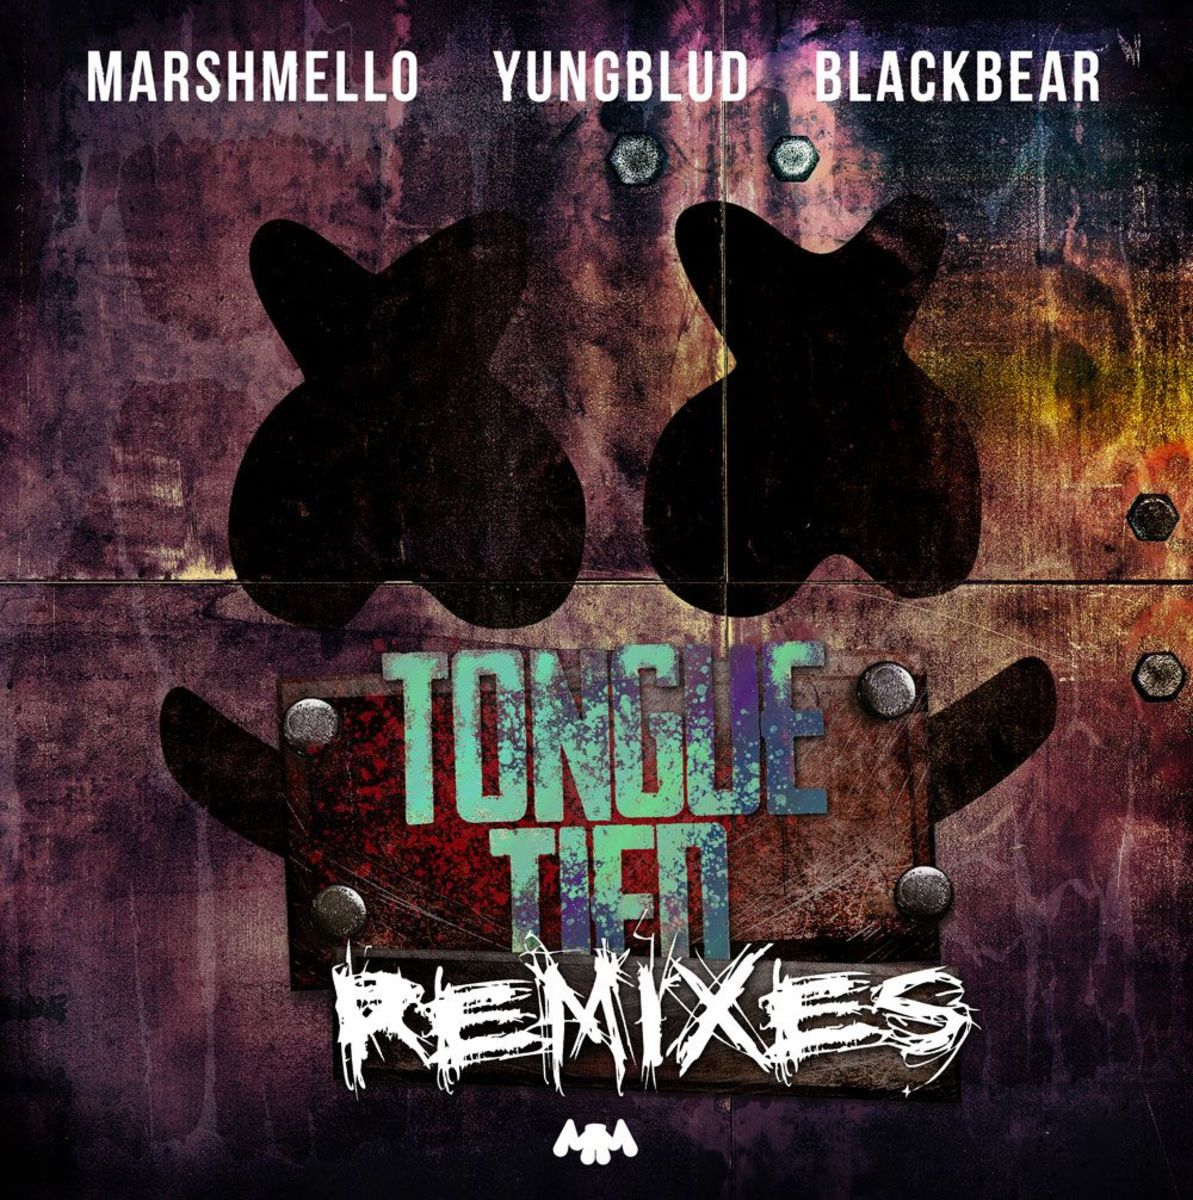 Marshmello Tongue Tied Remixes